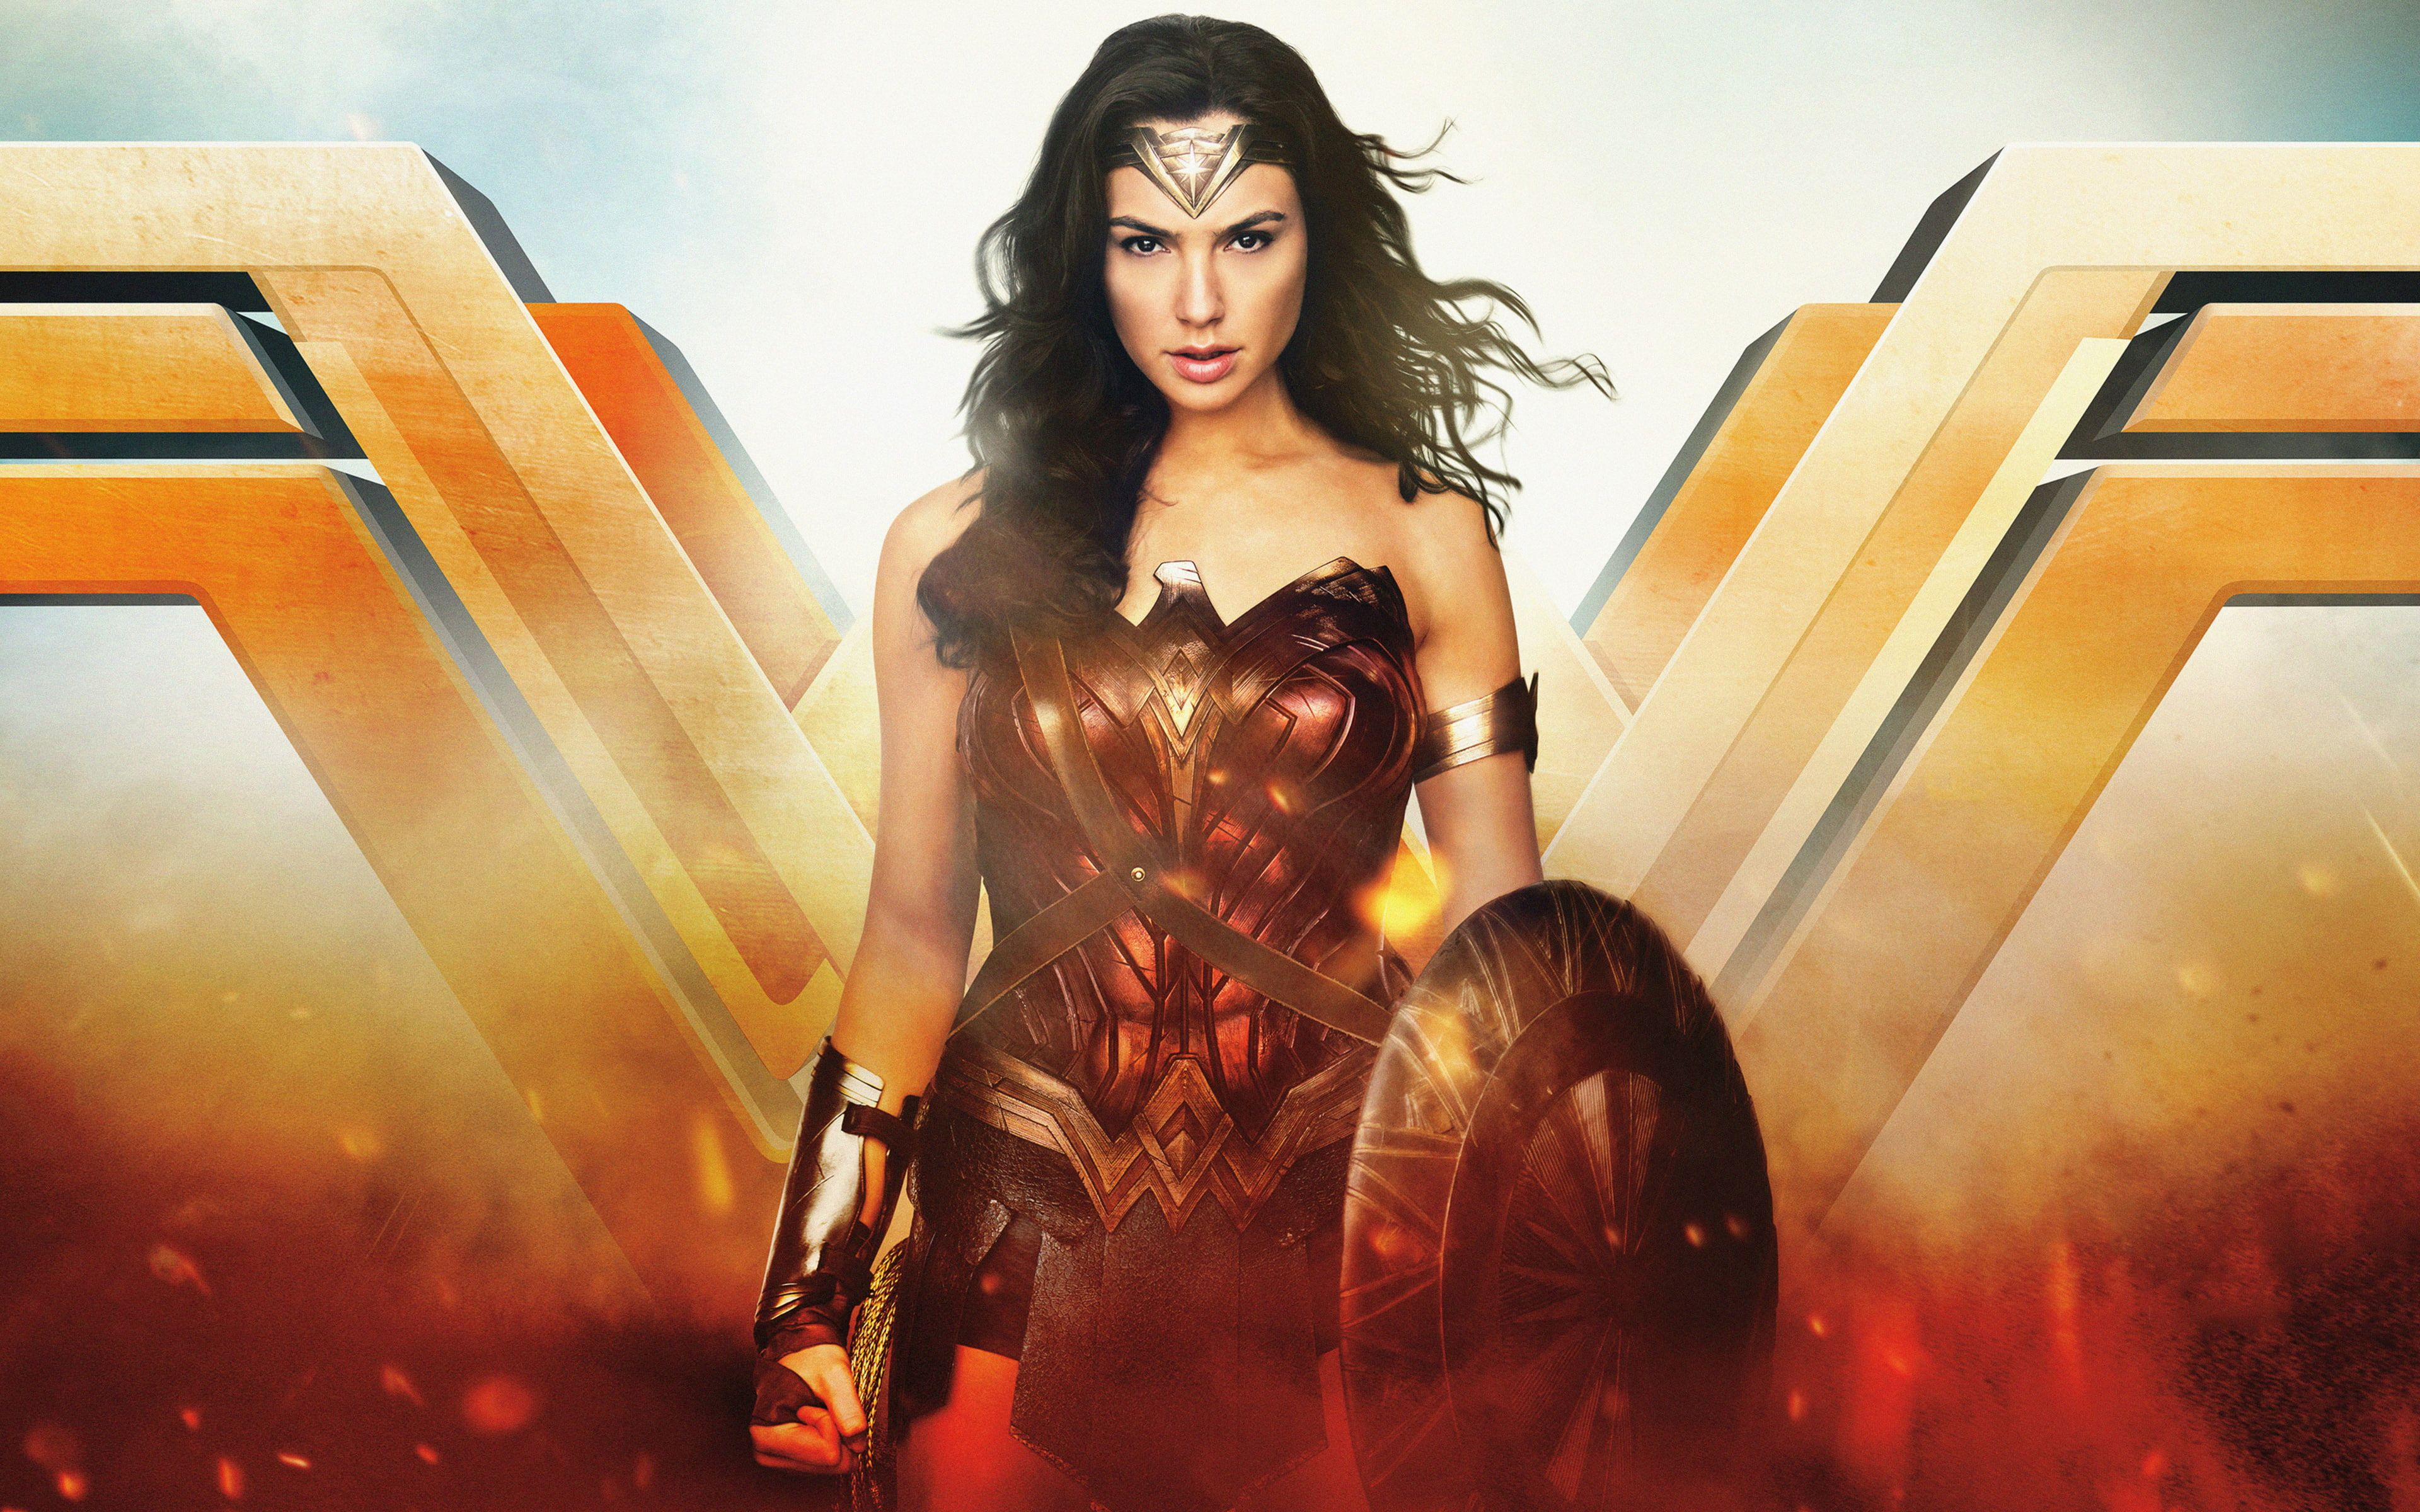 Wonder Woman Hd 4k 8k Wonder Woman 4k Wallpaper Hdwallpaper Desktop In 2020 Gal Gadot Wonder Woman Wonder Woman Wonder Woman Movie